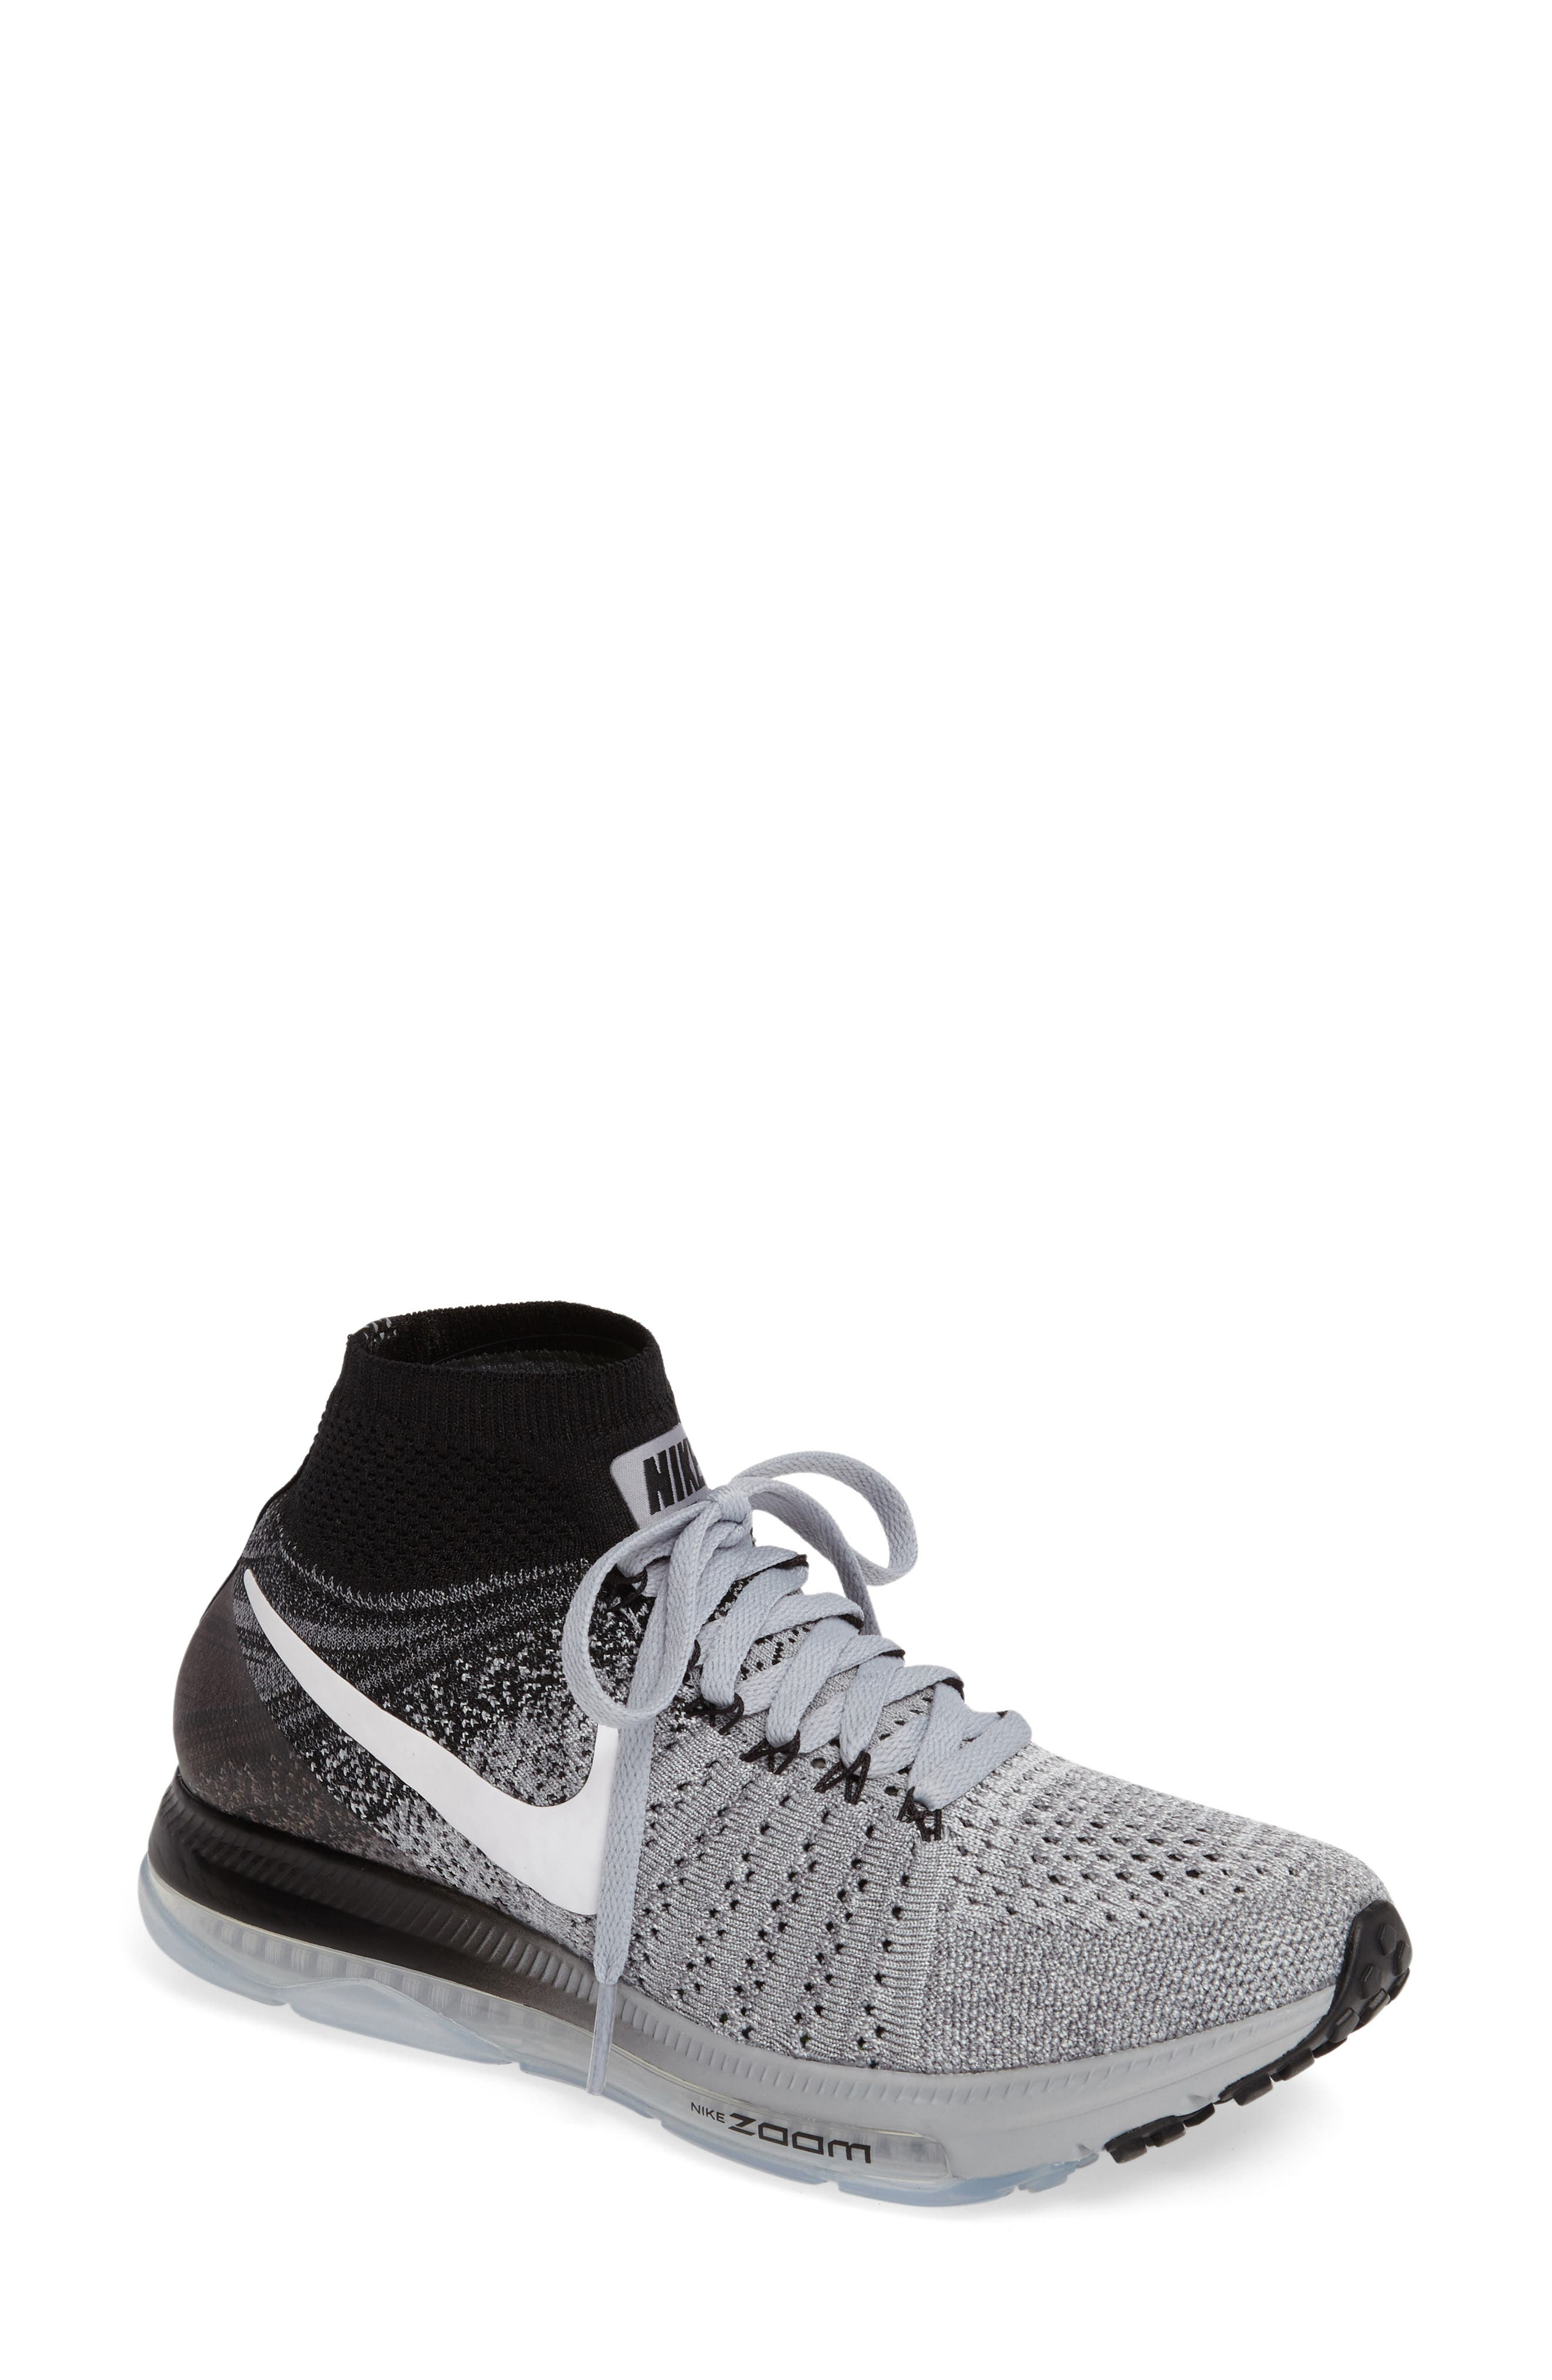 Air Zoom Pegasus All Out Flyknit Running Shoe,                             Main thumbnail 1, color,                             021